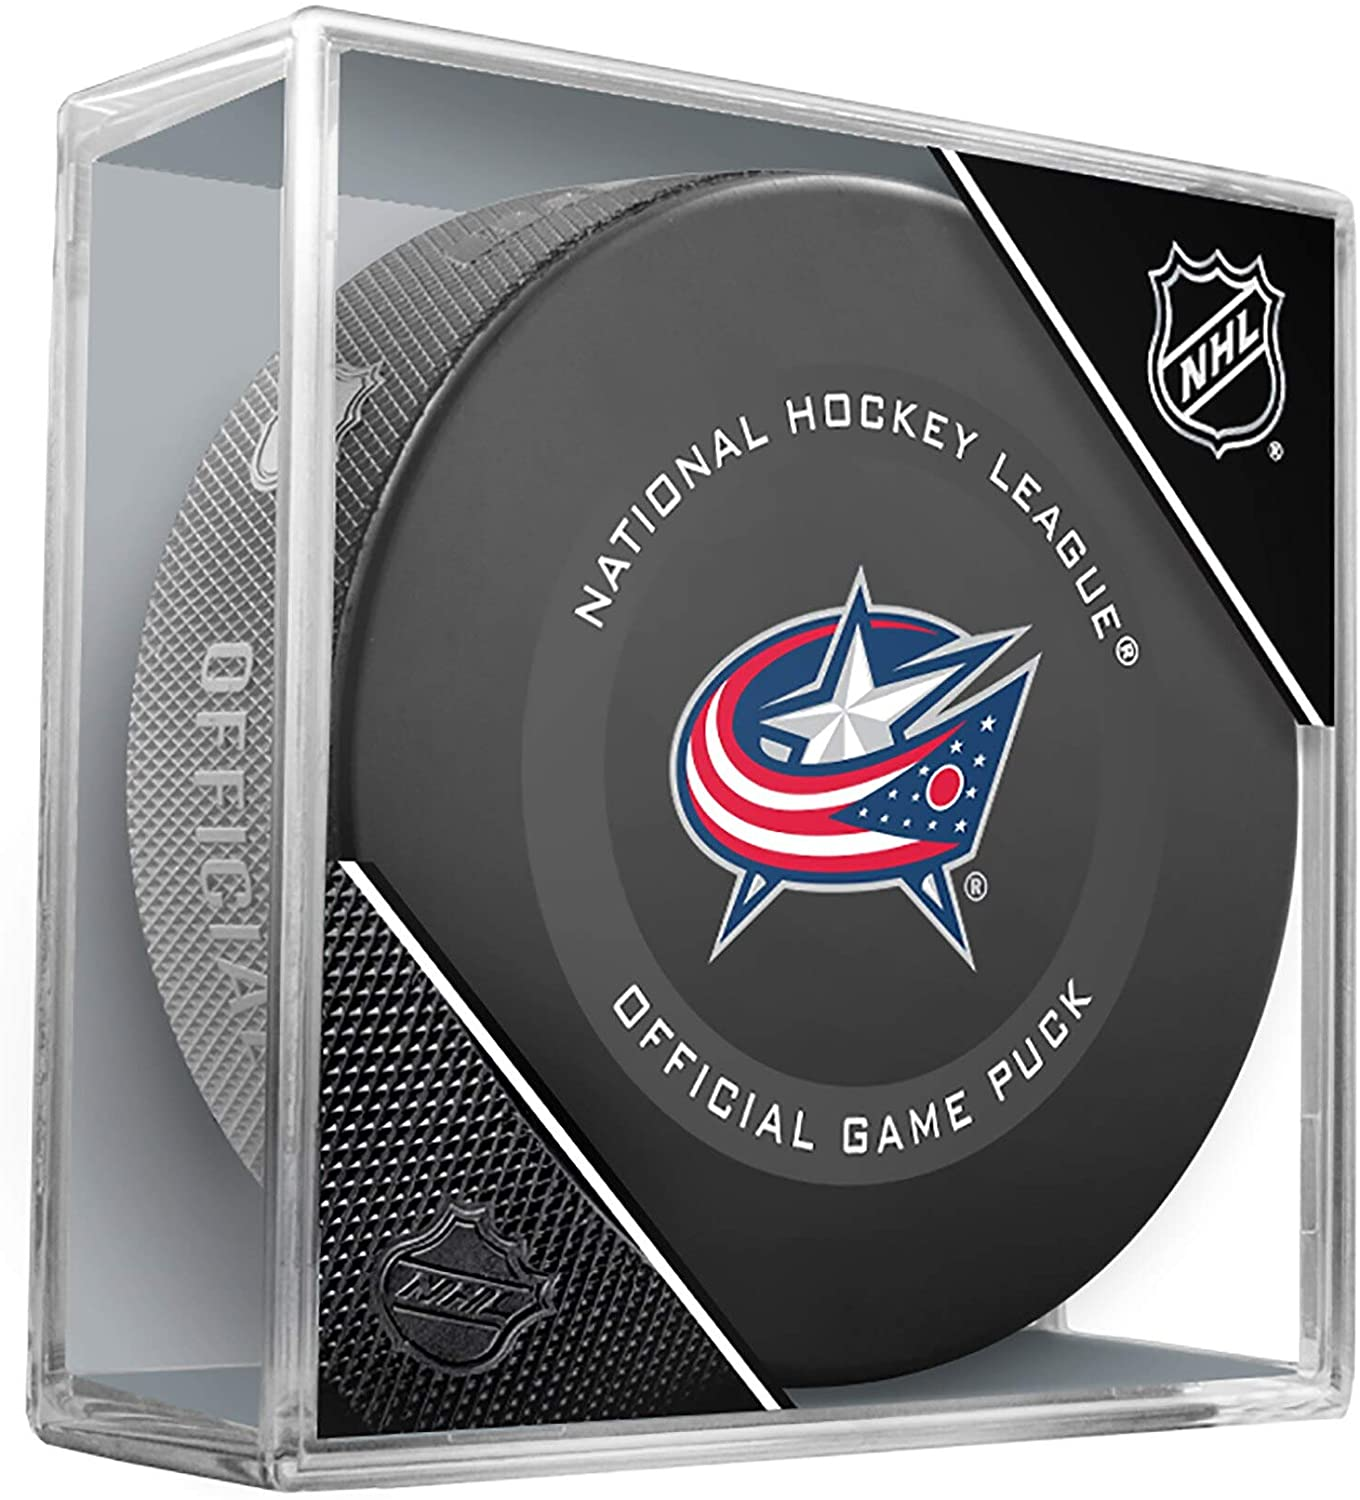 Columbus Blue Jackets Official Game Hockey Puck with Holder